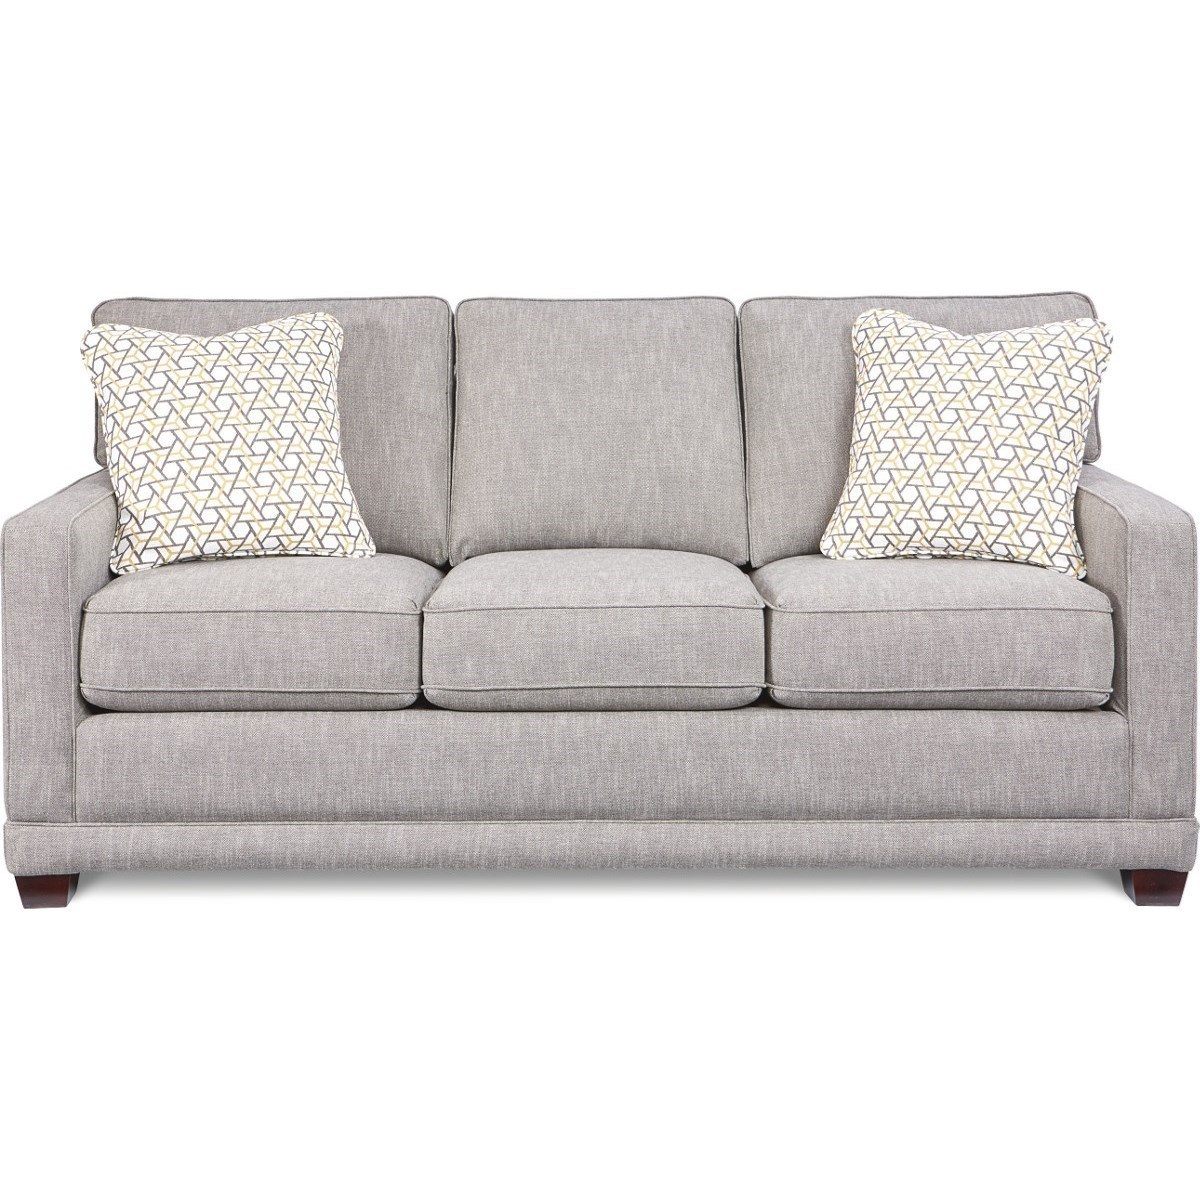 Cord Sofa La Z Boy Kennedy Transitional Sofa With Wood Legs And Welt Cord